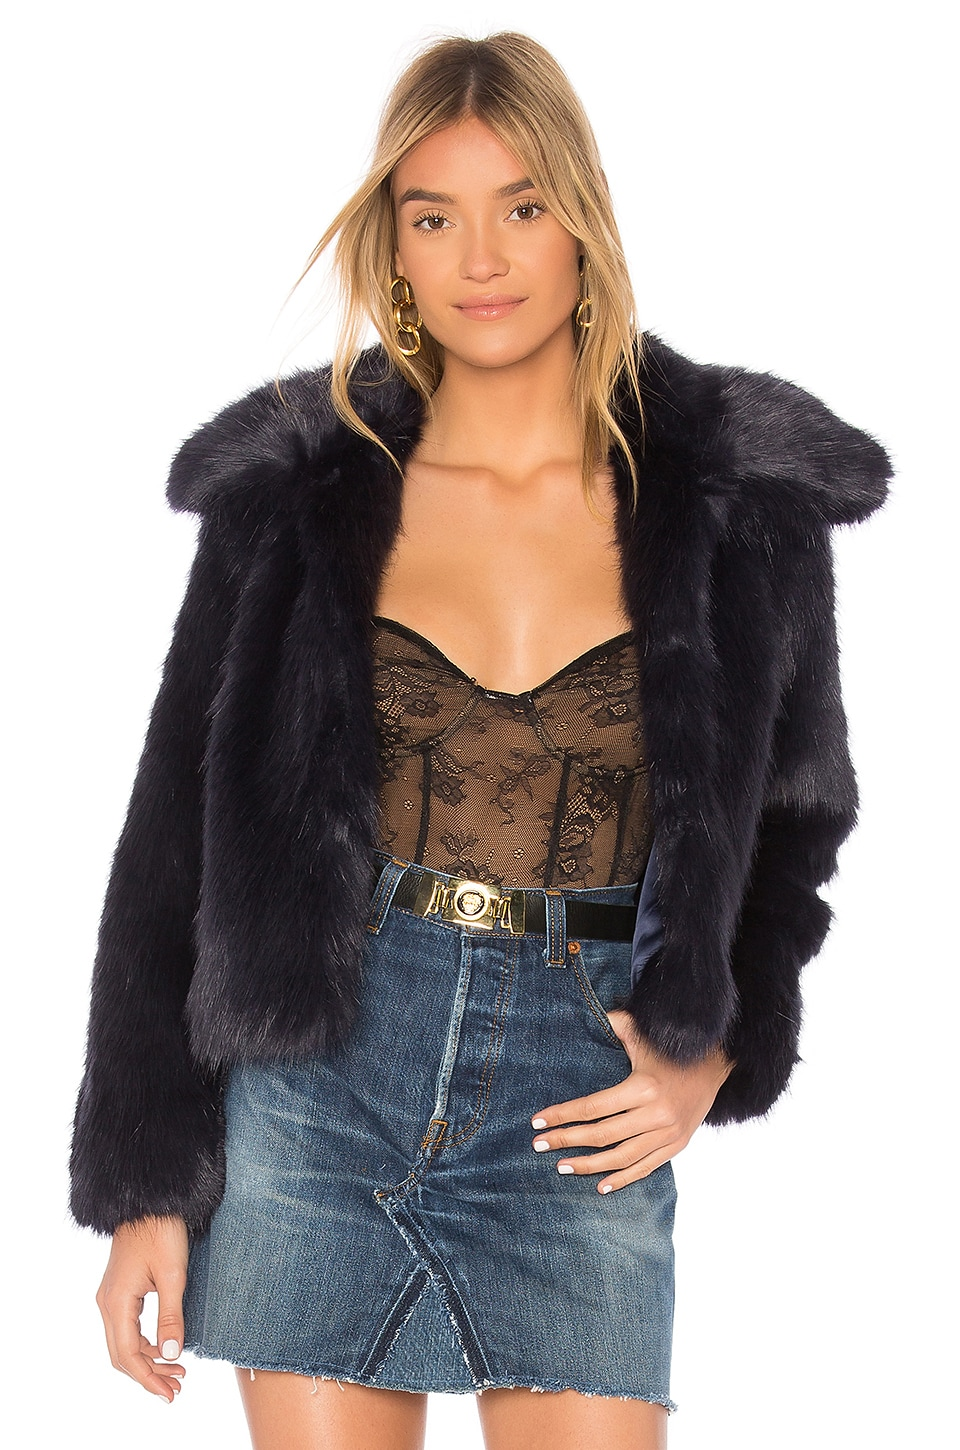 x REVOLVE Ryder Faux Fur Jacket by EAVES